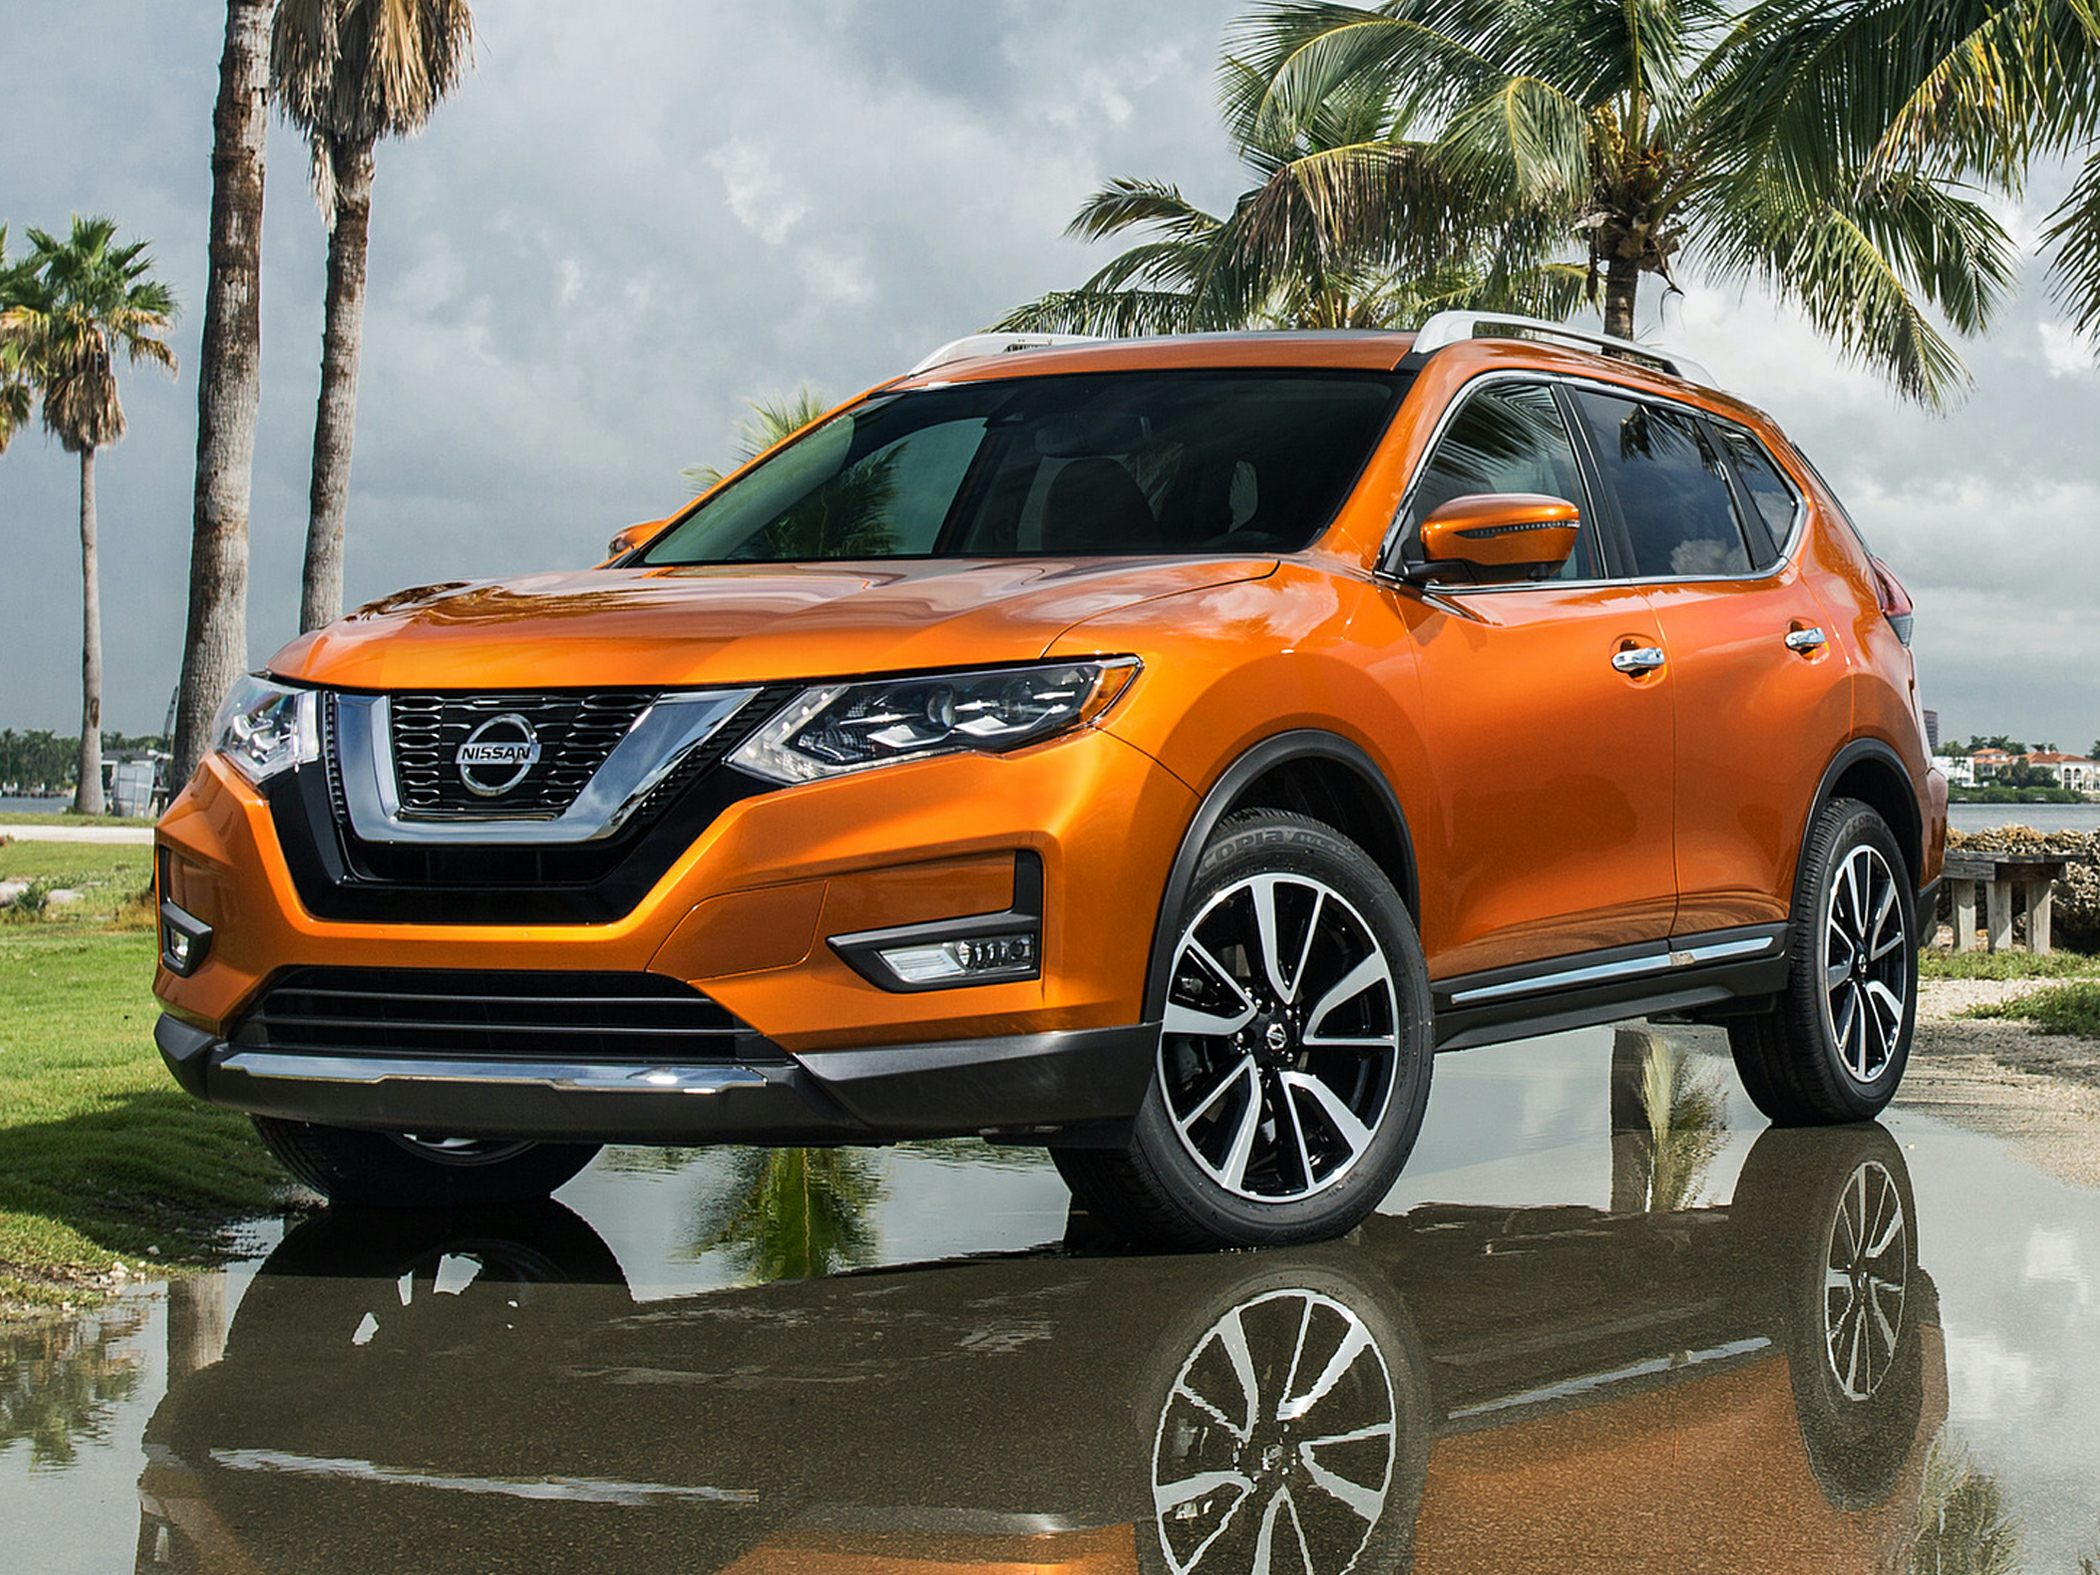 2017 nissan rogue deals prices incentives leases overview carsdirect. Black Bedroom Furniture Sets. Home Design Ideas